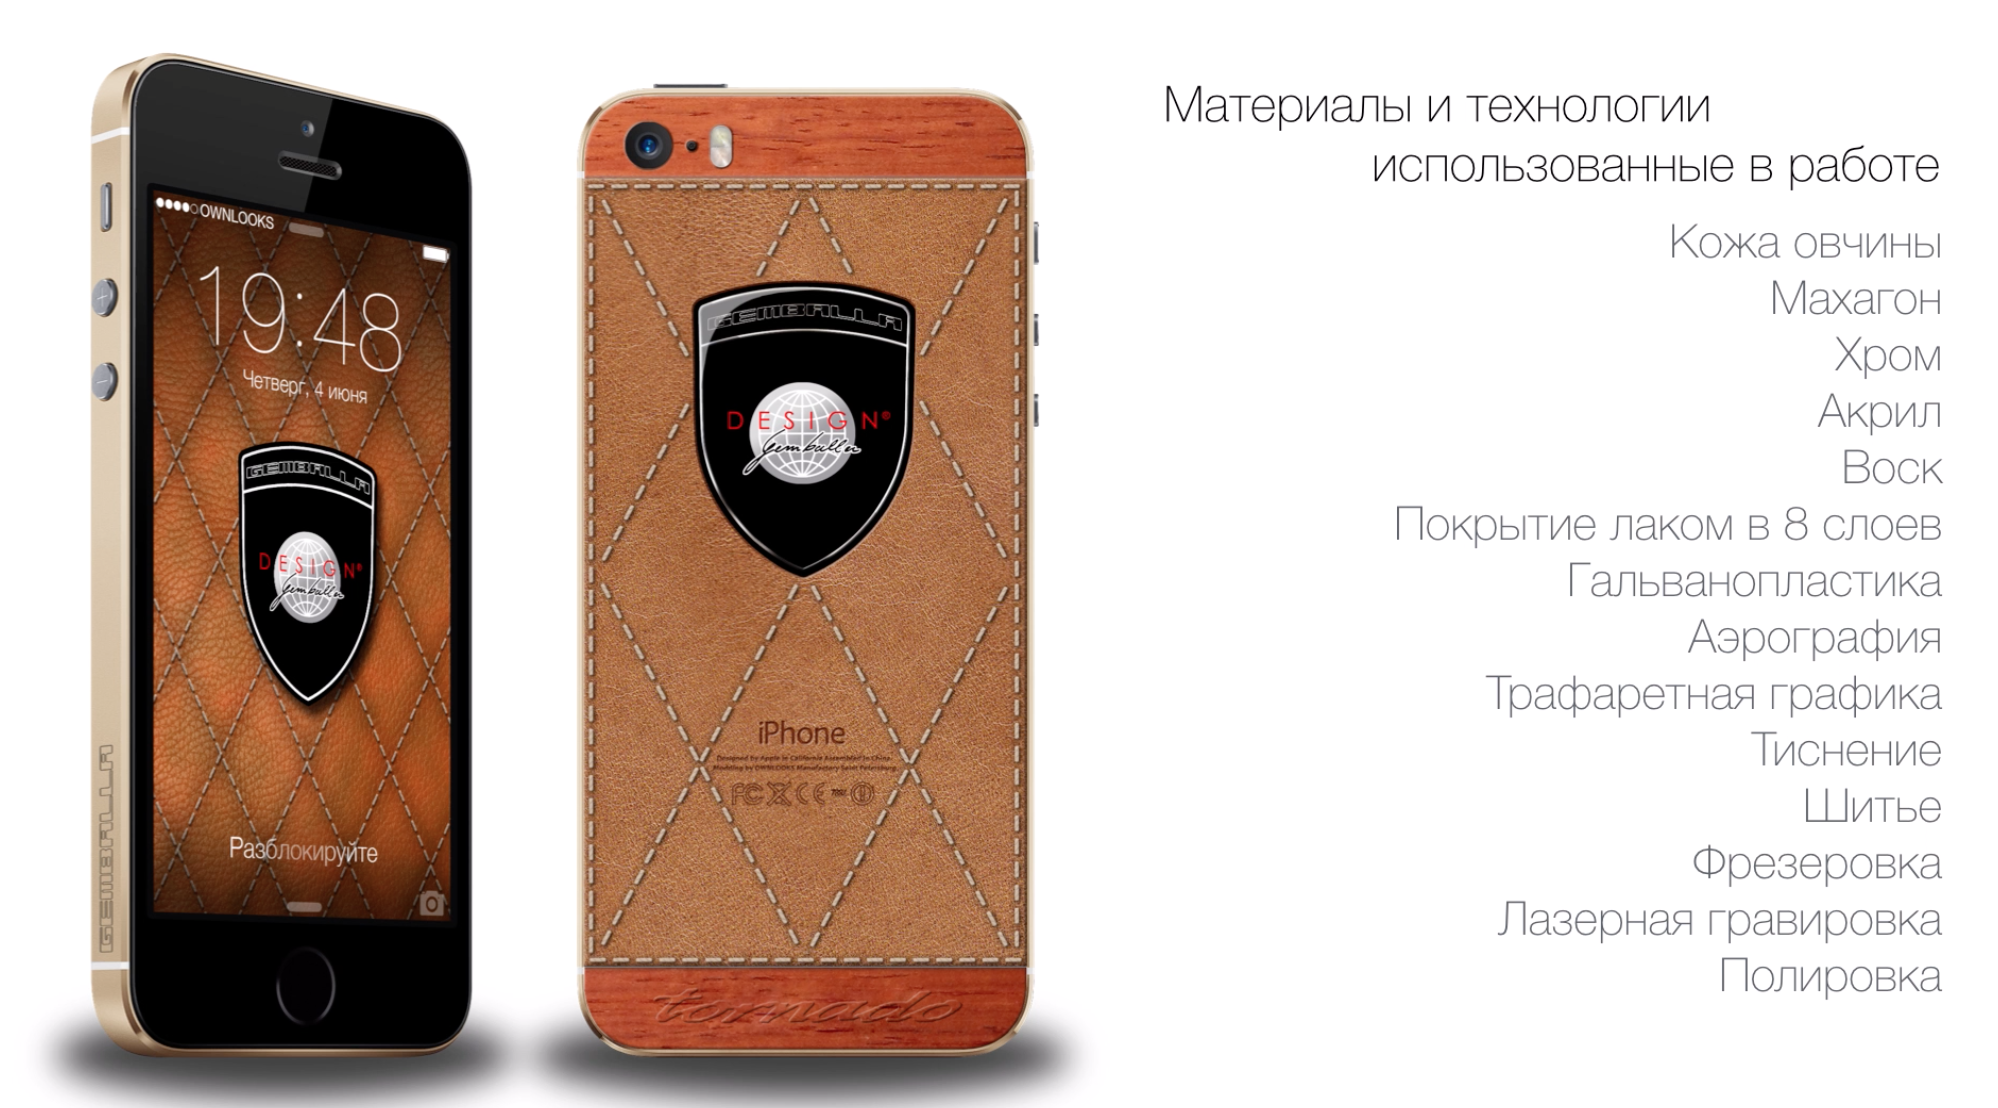 GEMBALLA_iPhone_5S_gold_exclusive